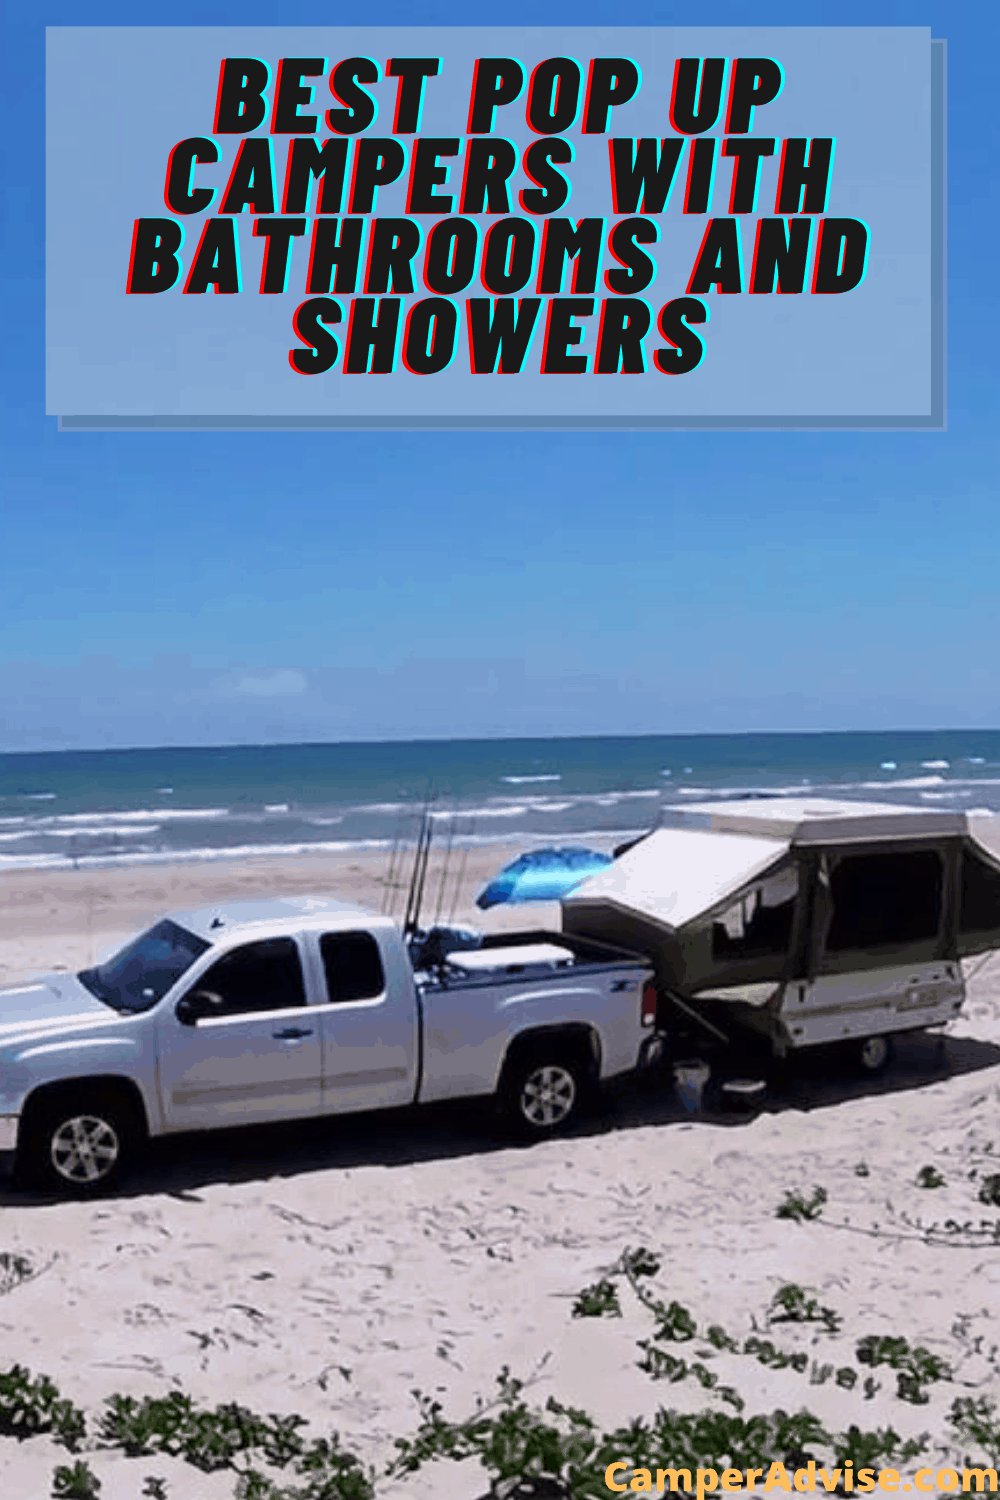 Best Pop Up Campers with Bathrooms and Shower